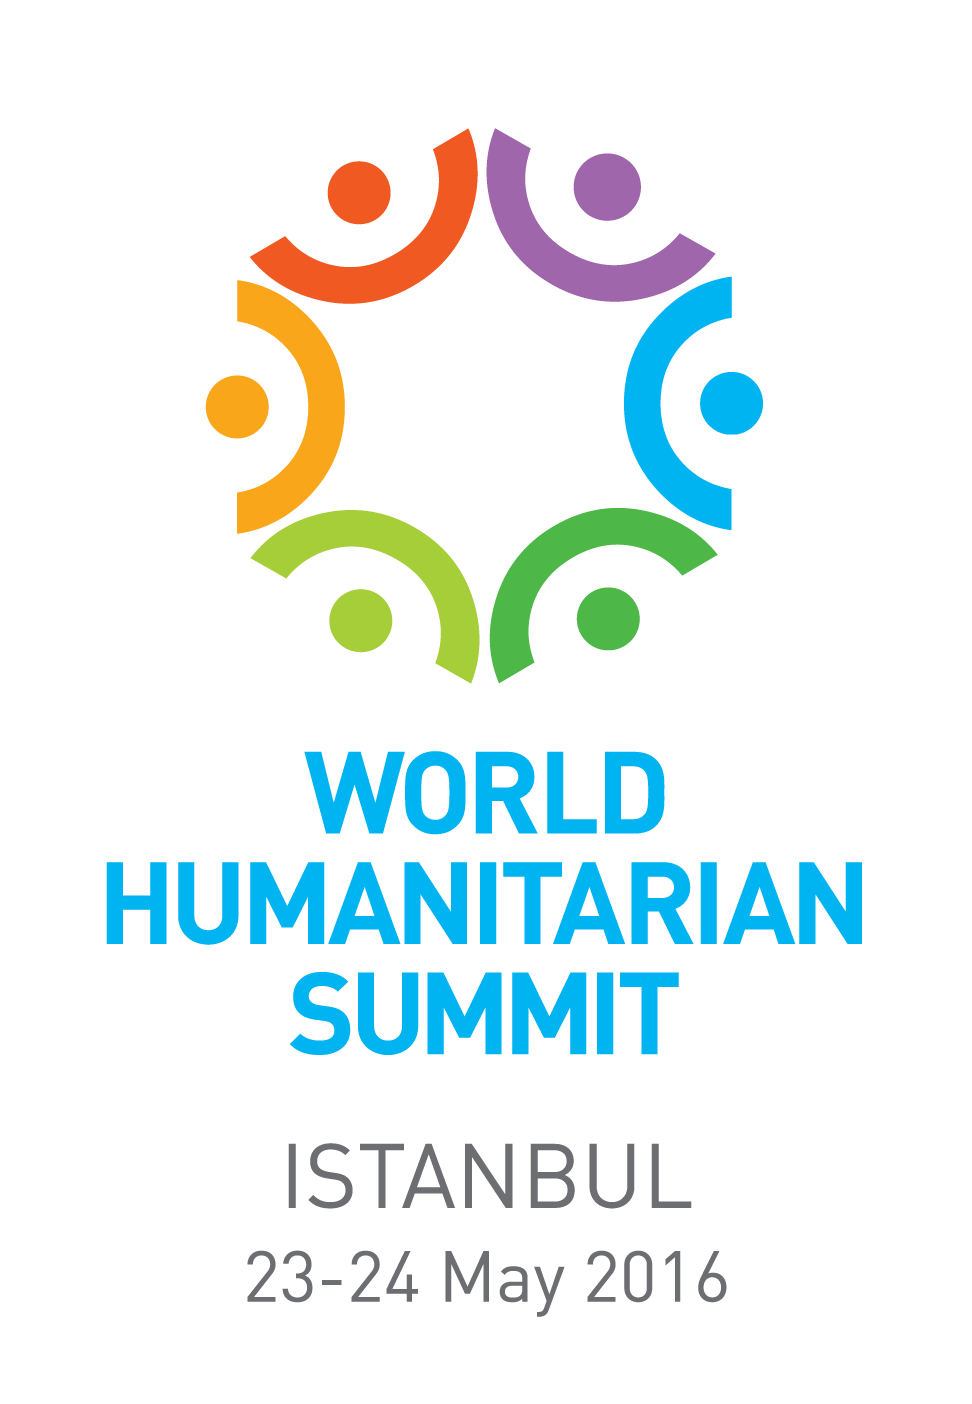 World_Humanitarian_Summit_WHS_logo.png